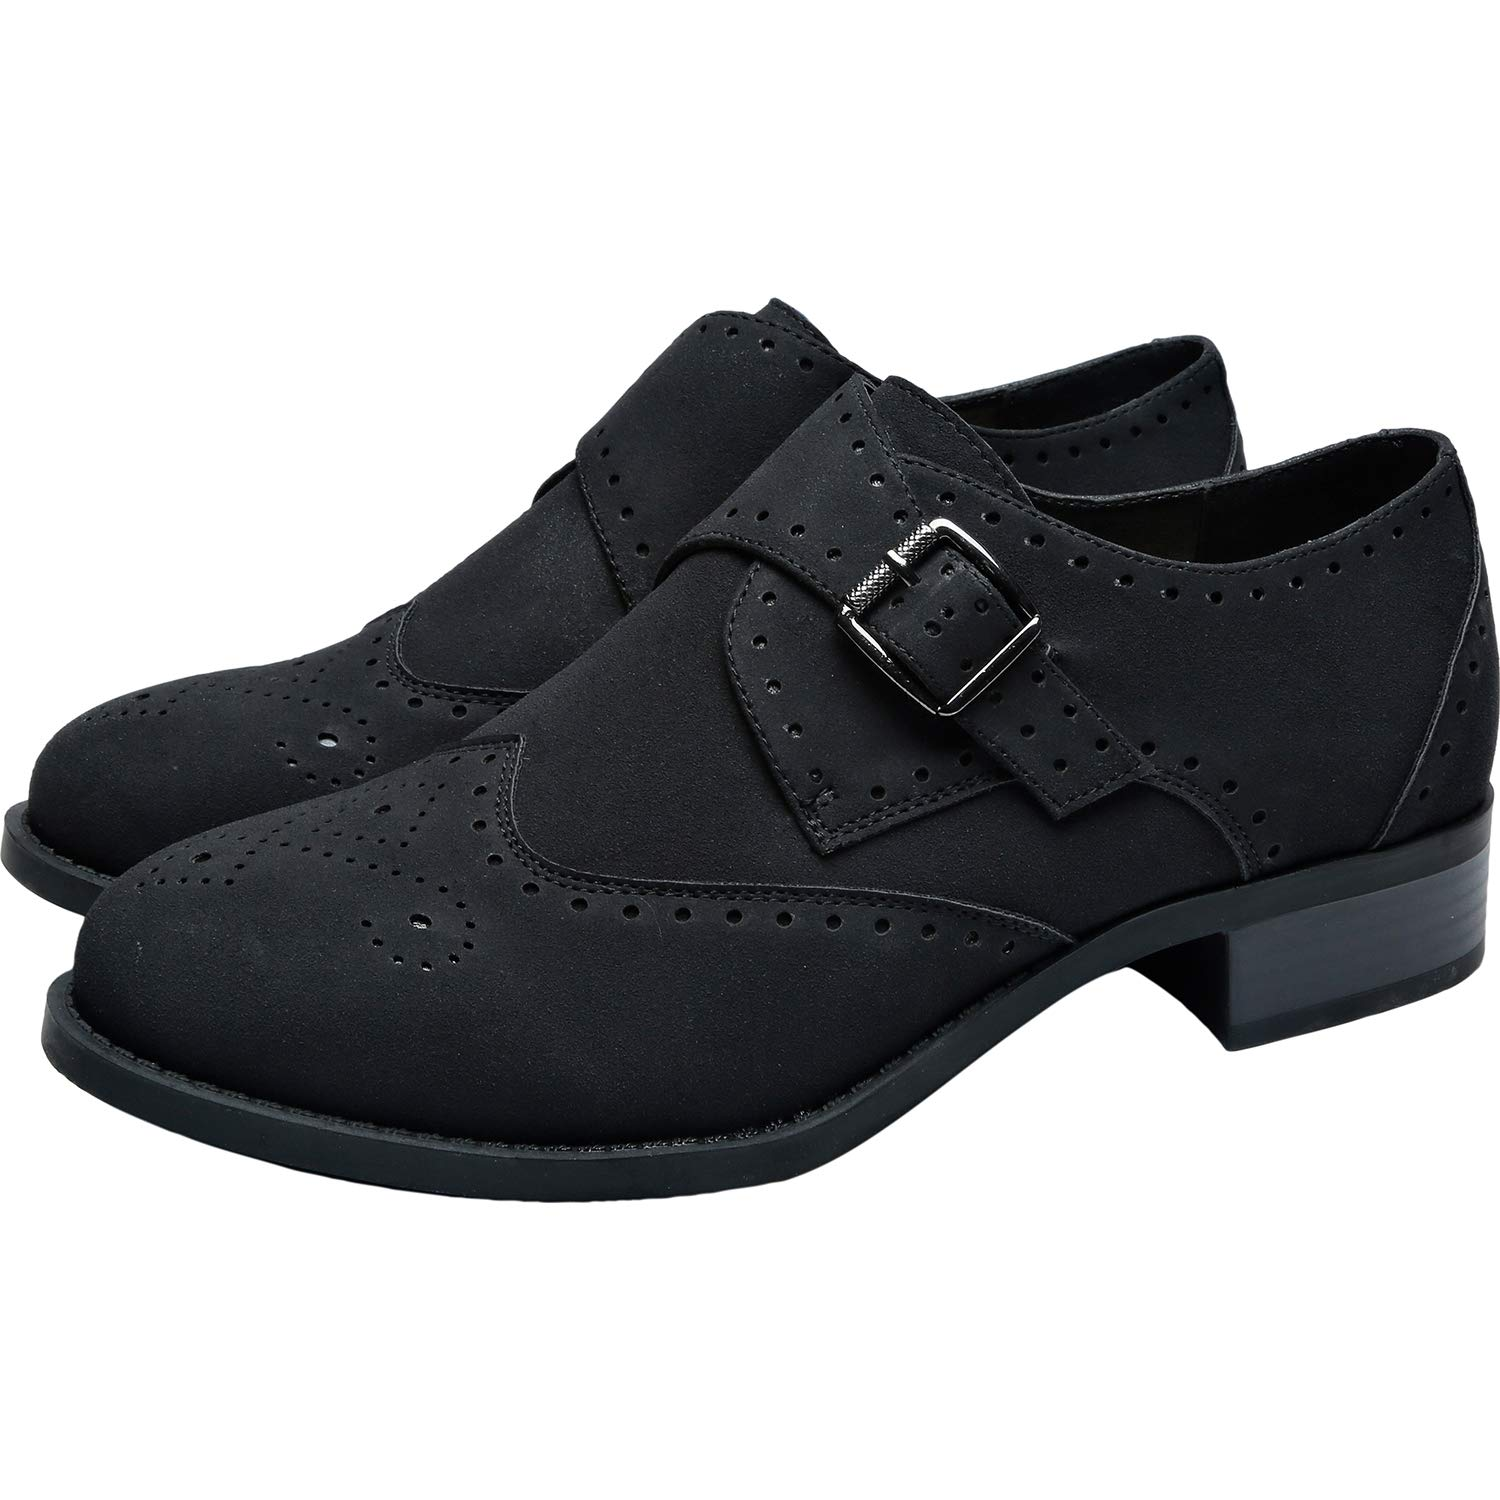 Women's Oxford Shoes – Vintage 1920s, 1930s, 1940s Heels Womens Wide Width Brogue Oxfords - Low Heel Urban Formal Monk Strap Shoes. $44.99 AT vintagedancer.com